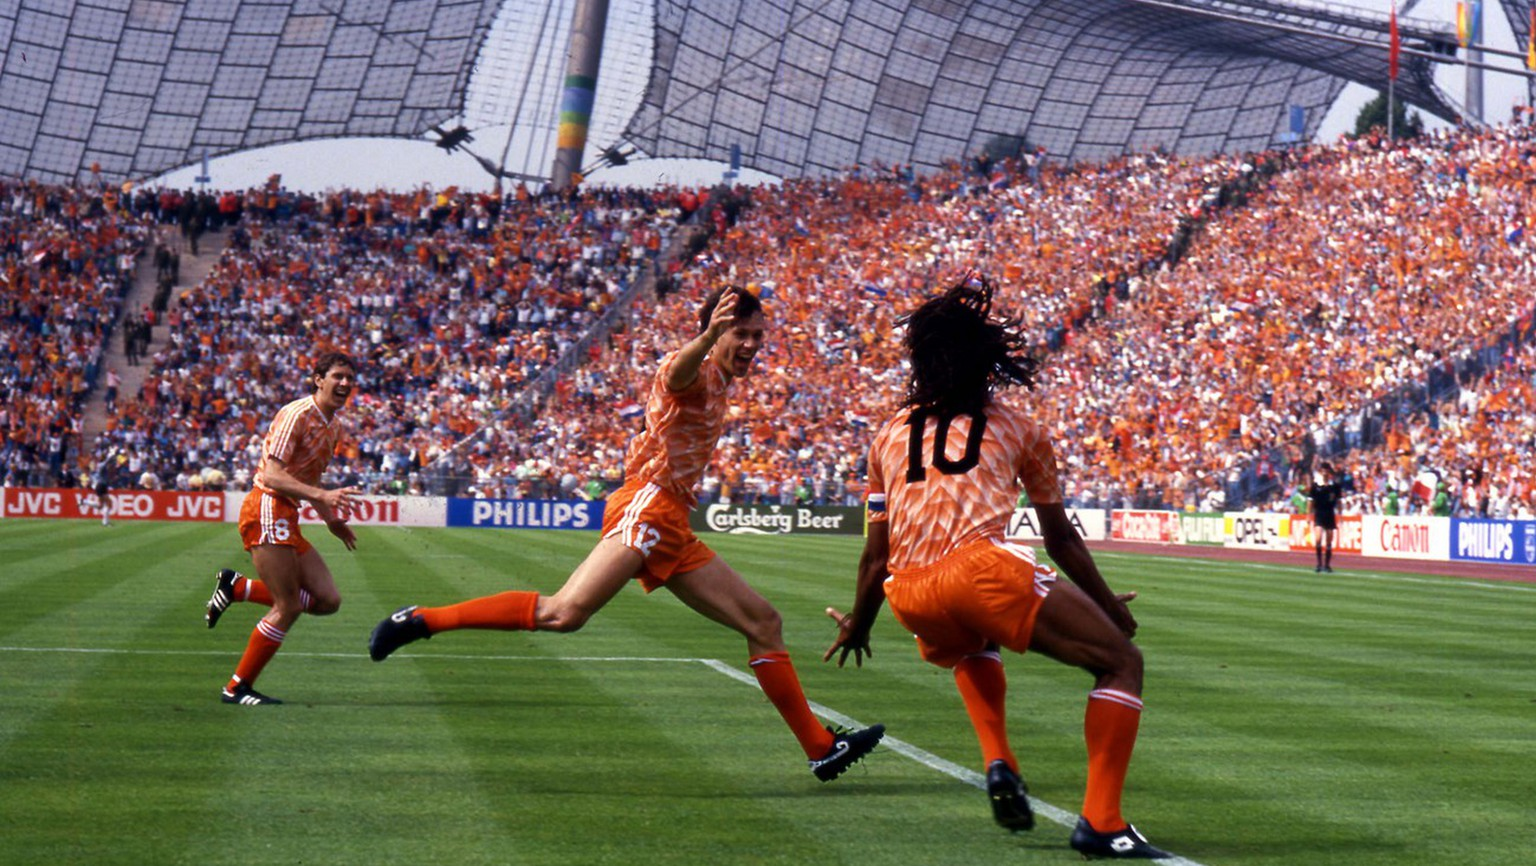 Marco Van Basten, at center, of the Netherlands soccer team celebrate with teammate Ruud Gullit, right, after scoring the winning goal during the final game of the European soccer Championships, on June 25, 1988 in Munich, West Germany. The Netherlands defeated Soviet Union 2-0 to win the Championship. (Ap Photo/Carlo Fumagalli)